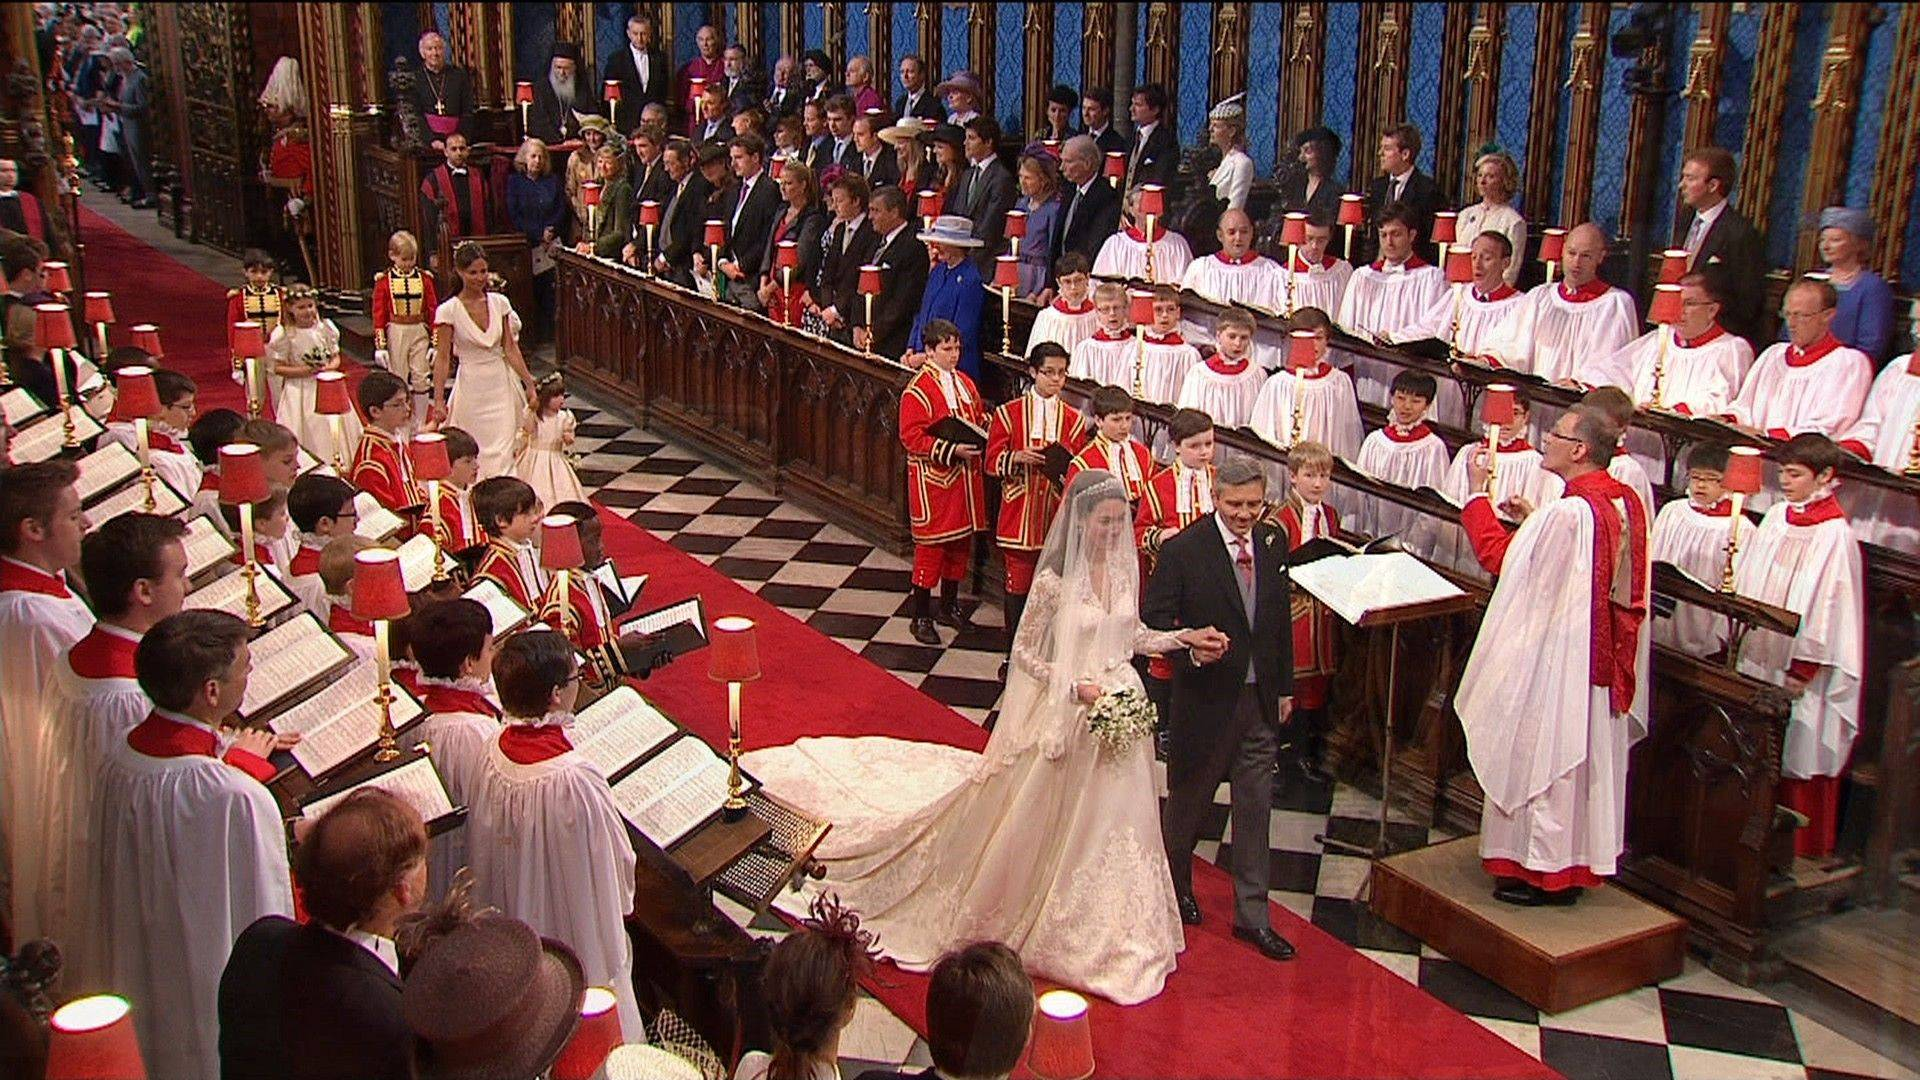 Kate Middleton walks down the aisle with her father, Michael Middleton, at Westminster Abbey for the Royal Wedding in London on Friday, April, 29, 2011.